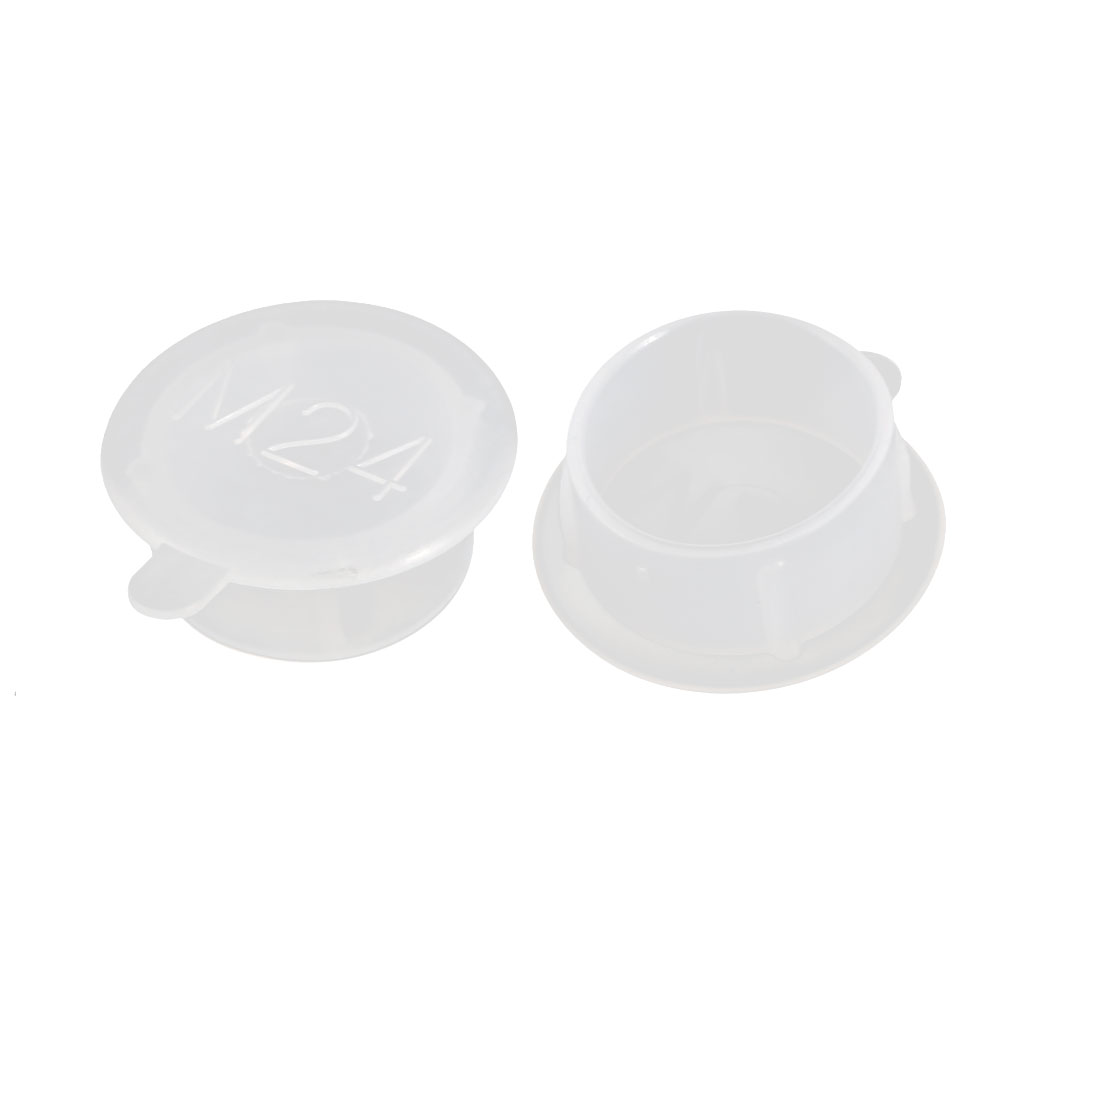 2pcs M24 PE Flat Blanking End Tube Insert Cap Round Cover Transparent